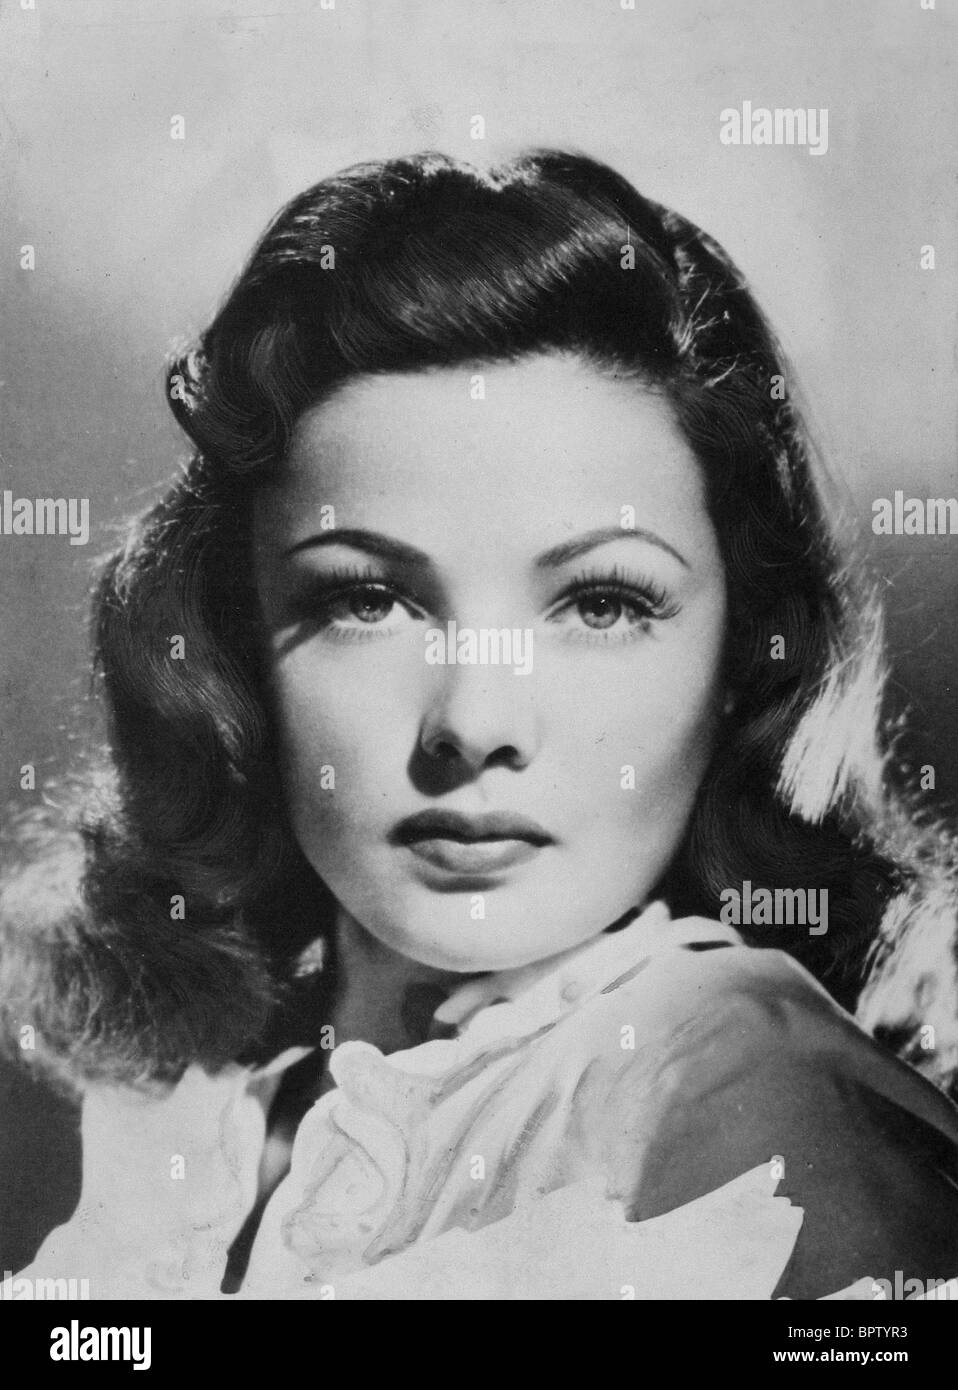 GENE TIERNEY ACTRESS (1945) - Stock Image